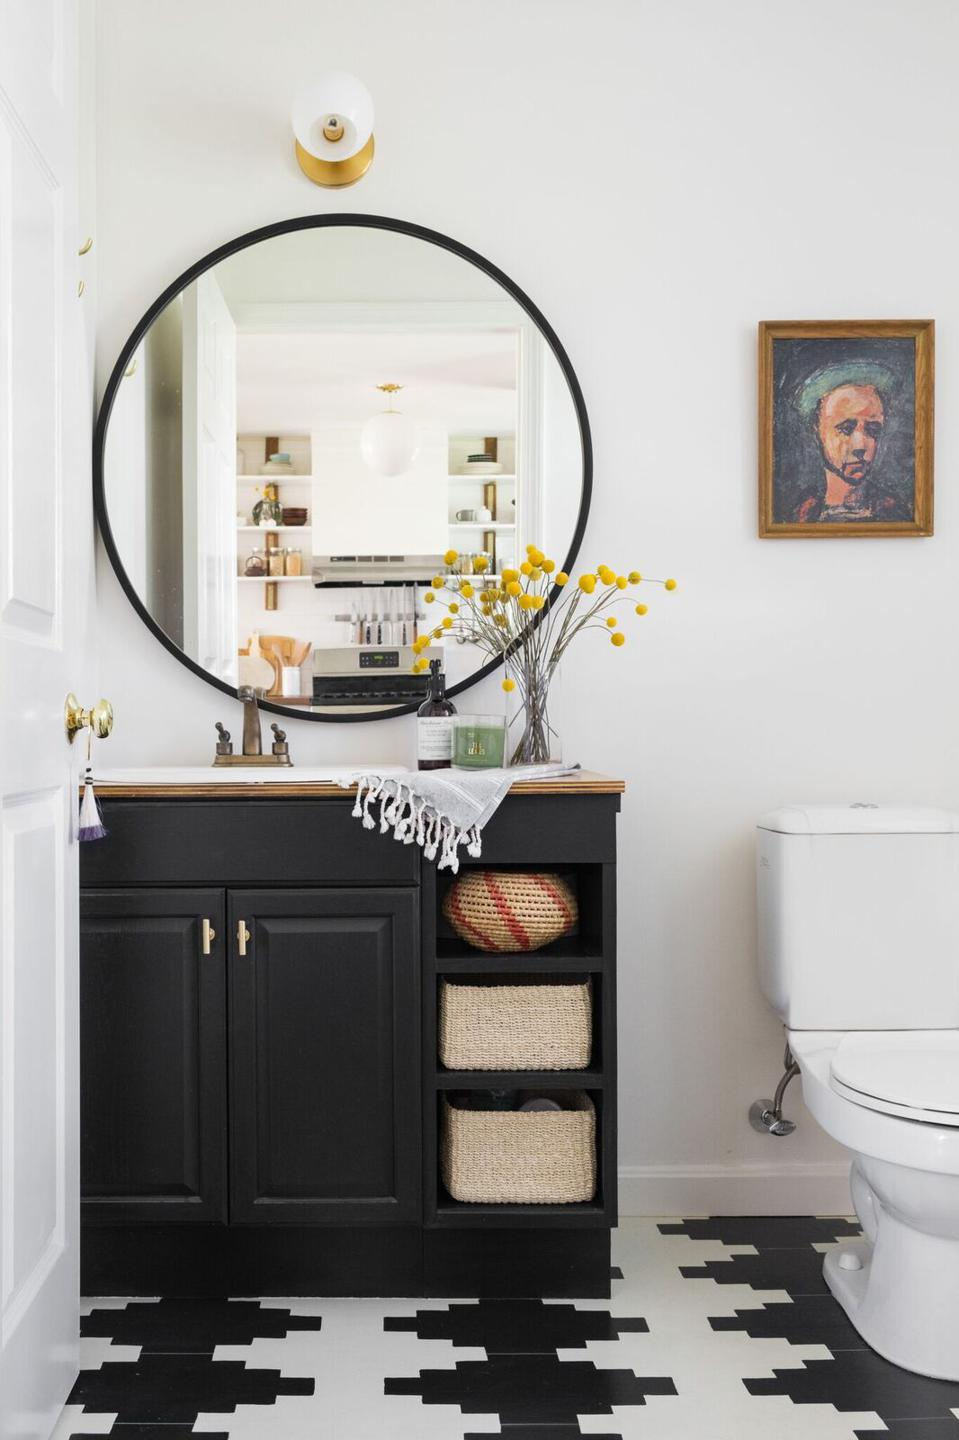 This black and white bathroom was designed by Shannon Tate Interiors.